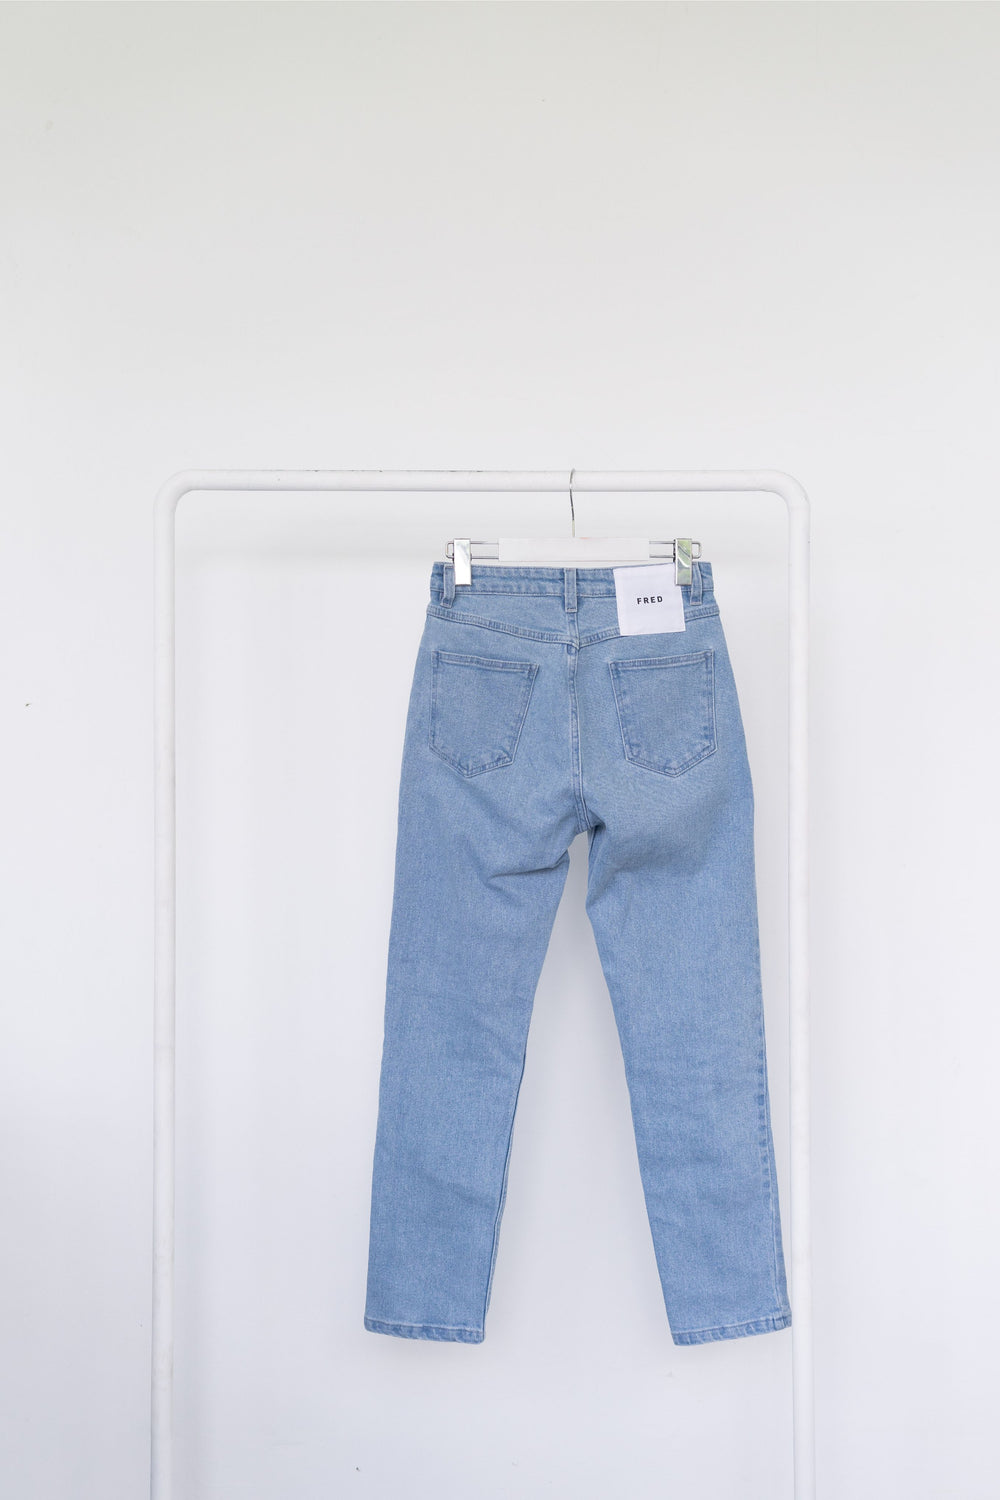 THE WRAP ME UP JEANS